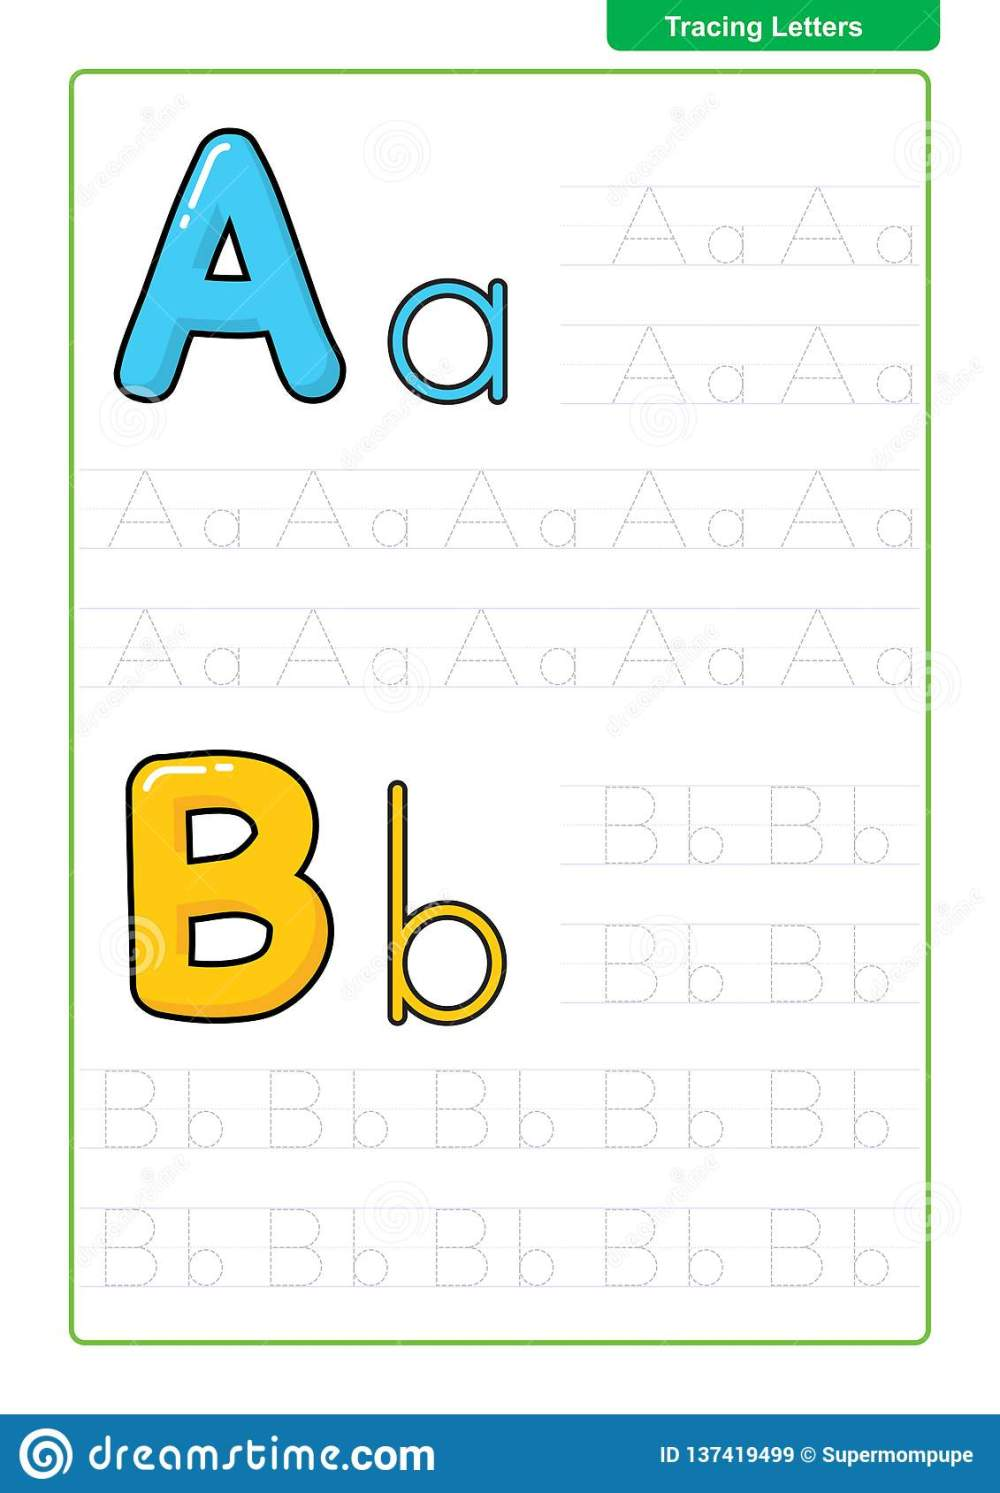 medium resolution of ABC Alphabet Letters Tracing Worksheet With Alphabet Letters. Basic Writing  Practice For Kindergarten Kids A4 Paper Ready To Print Stock Vector -  Illustration of alphabet